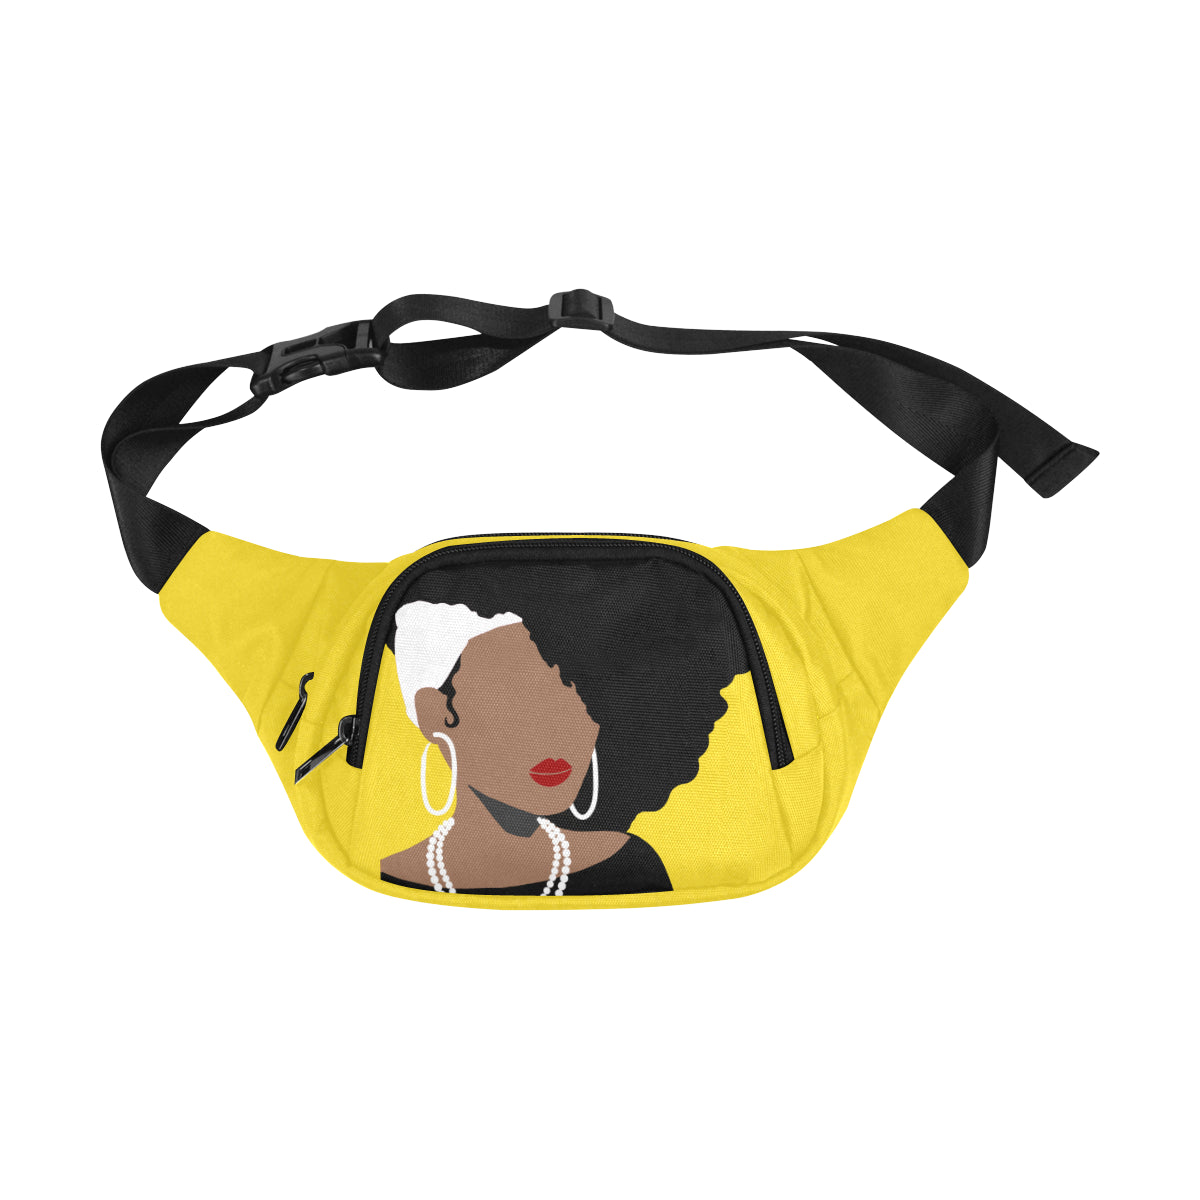 Bougie - Kelley 1873 Fanny Pack